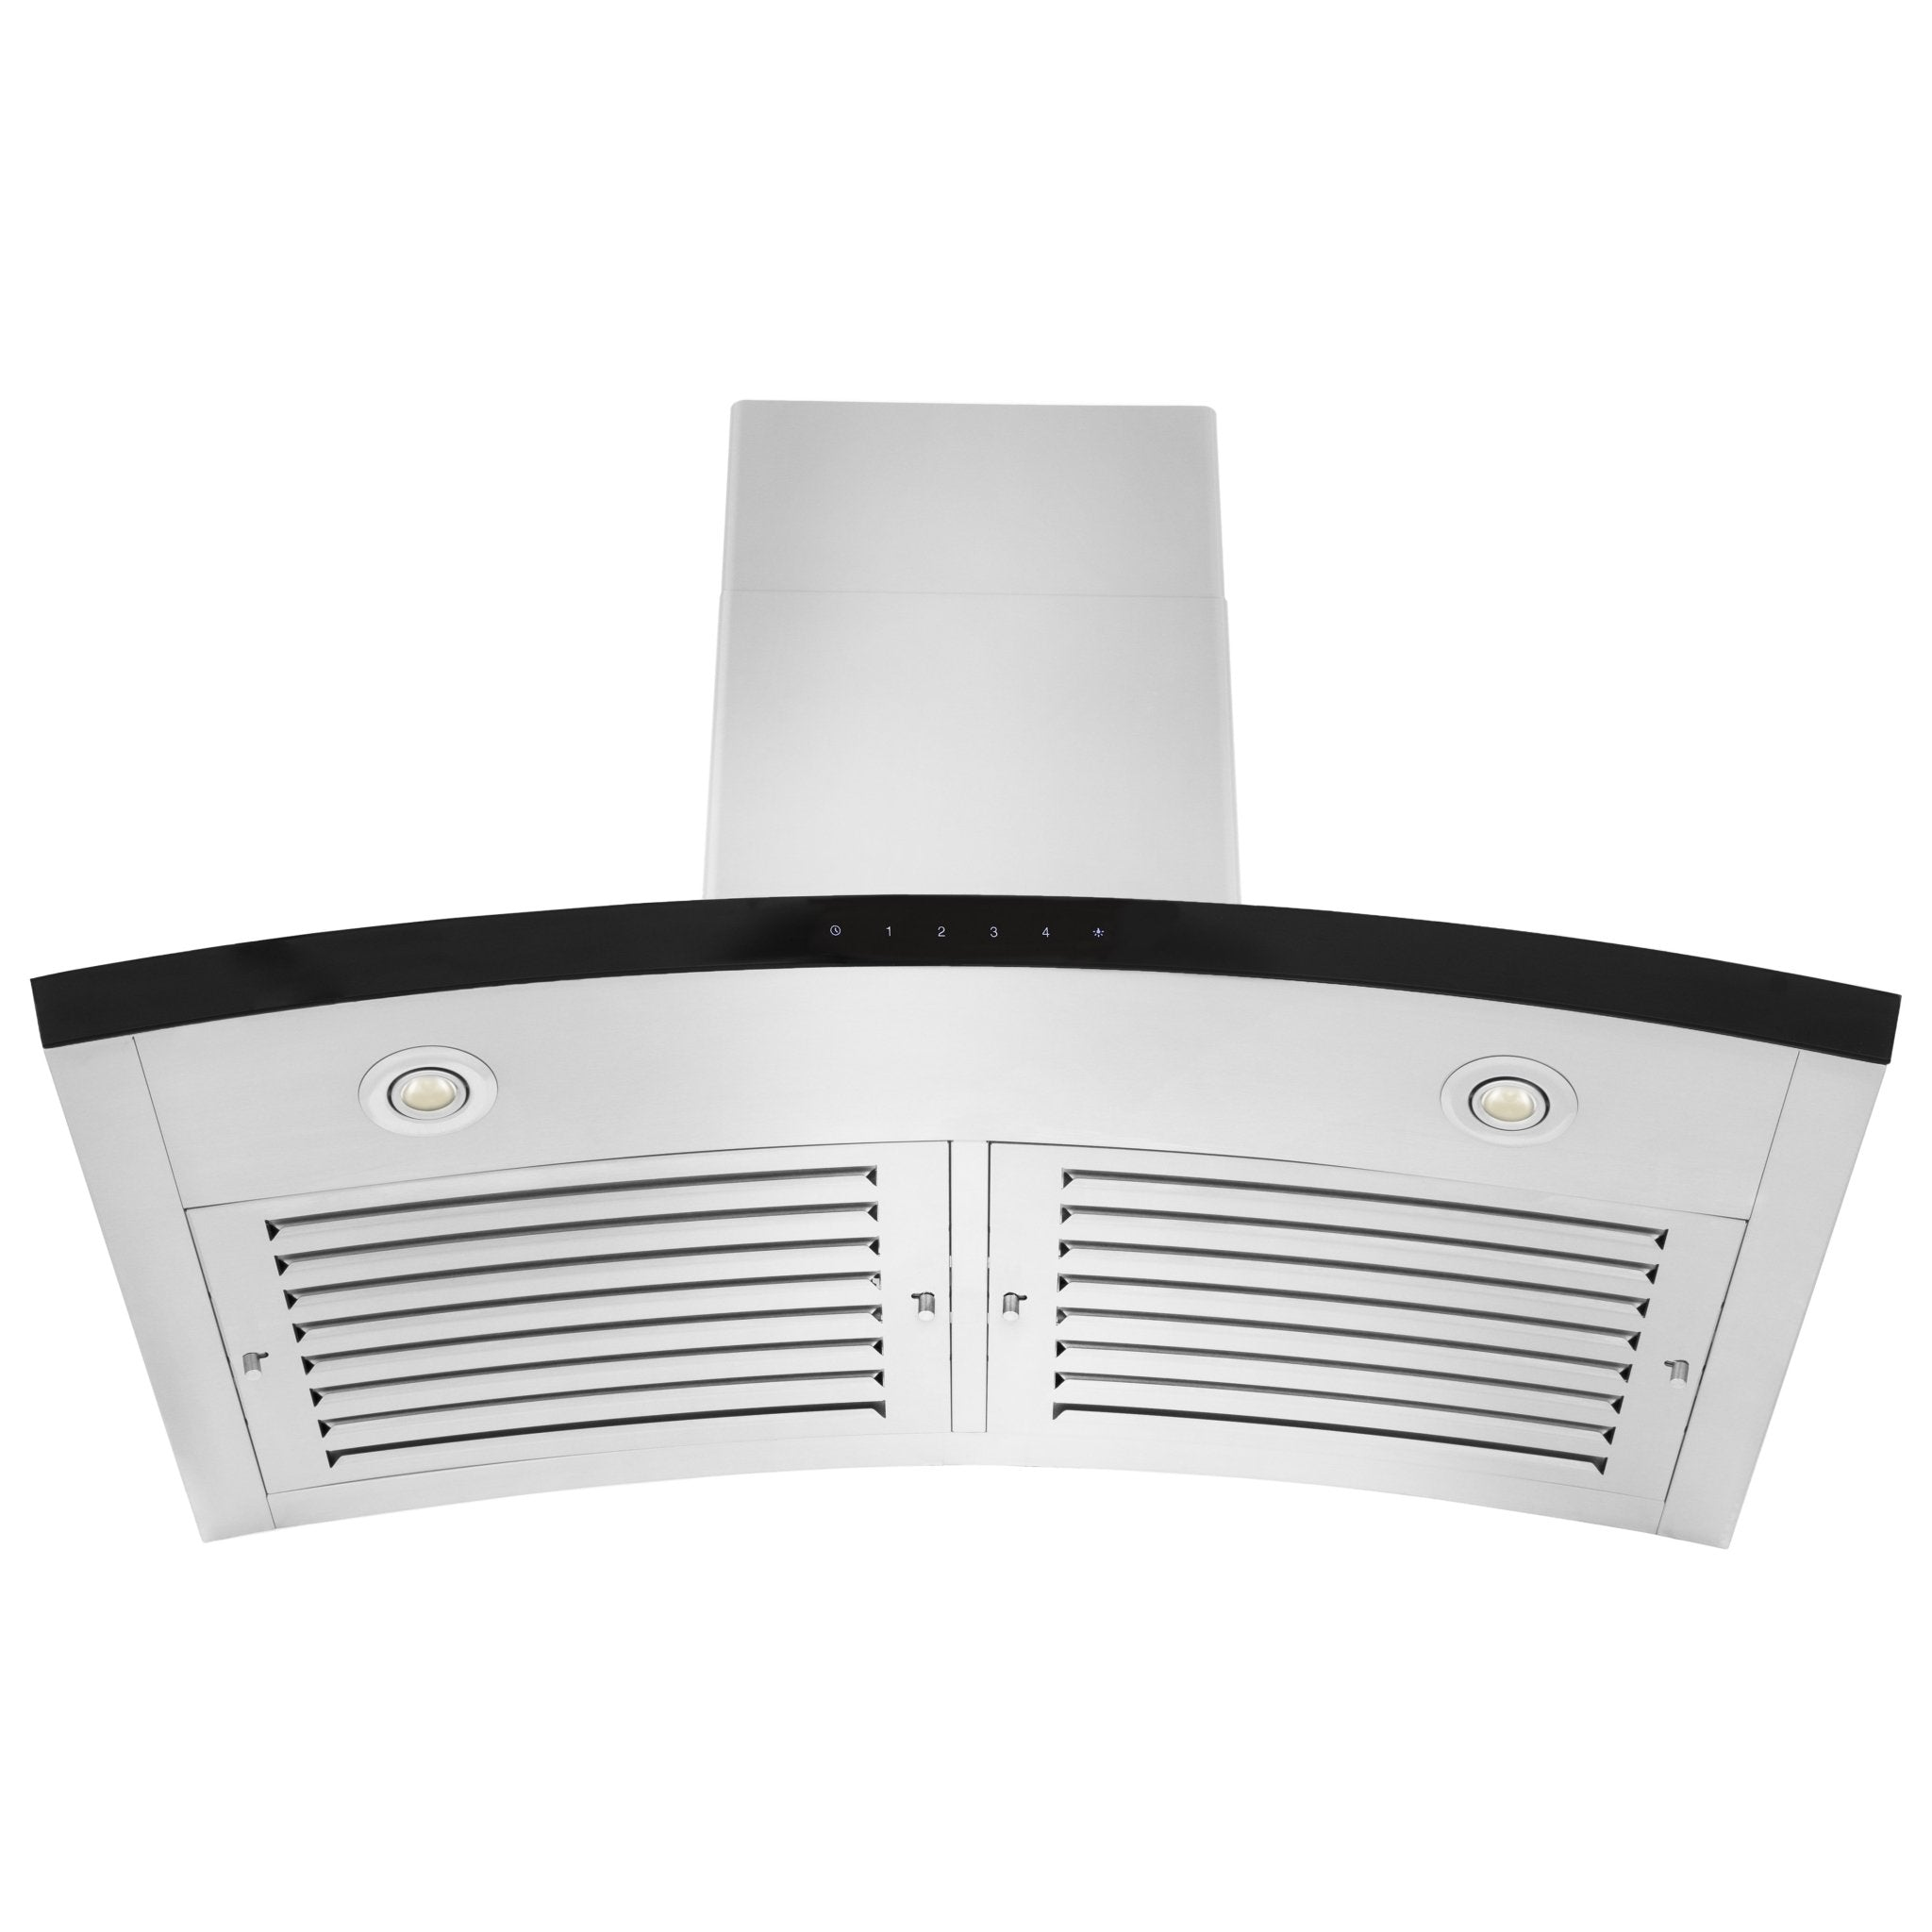 ZLINE Wall Mount Range Hood In Stainless Steel & Glass (KN6)